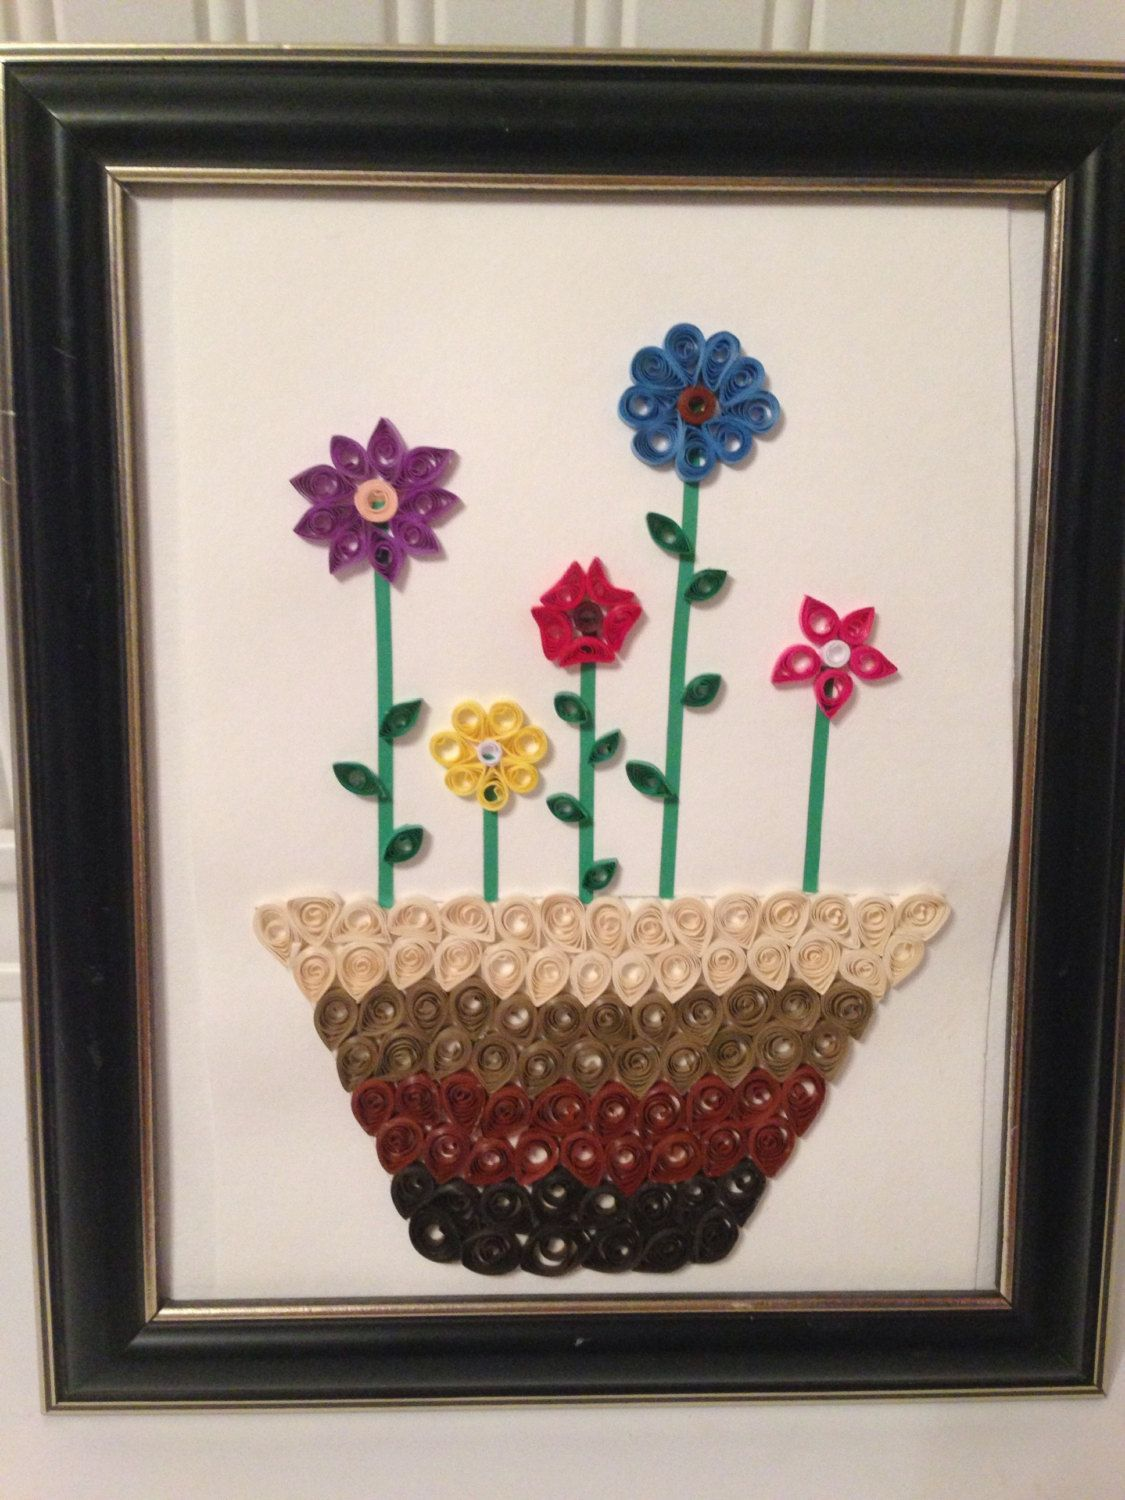 Framed quilling quilling picture flower decor by FunWithWreaths, $20.00